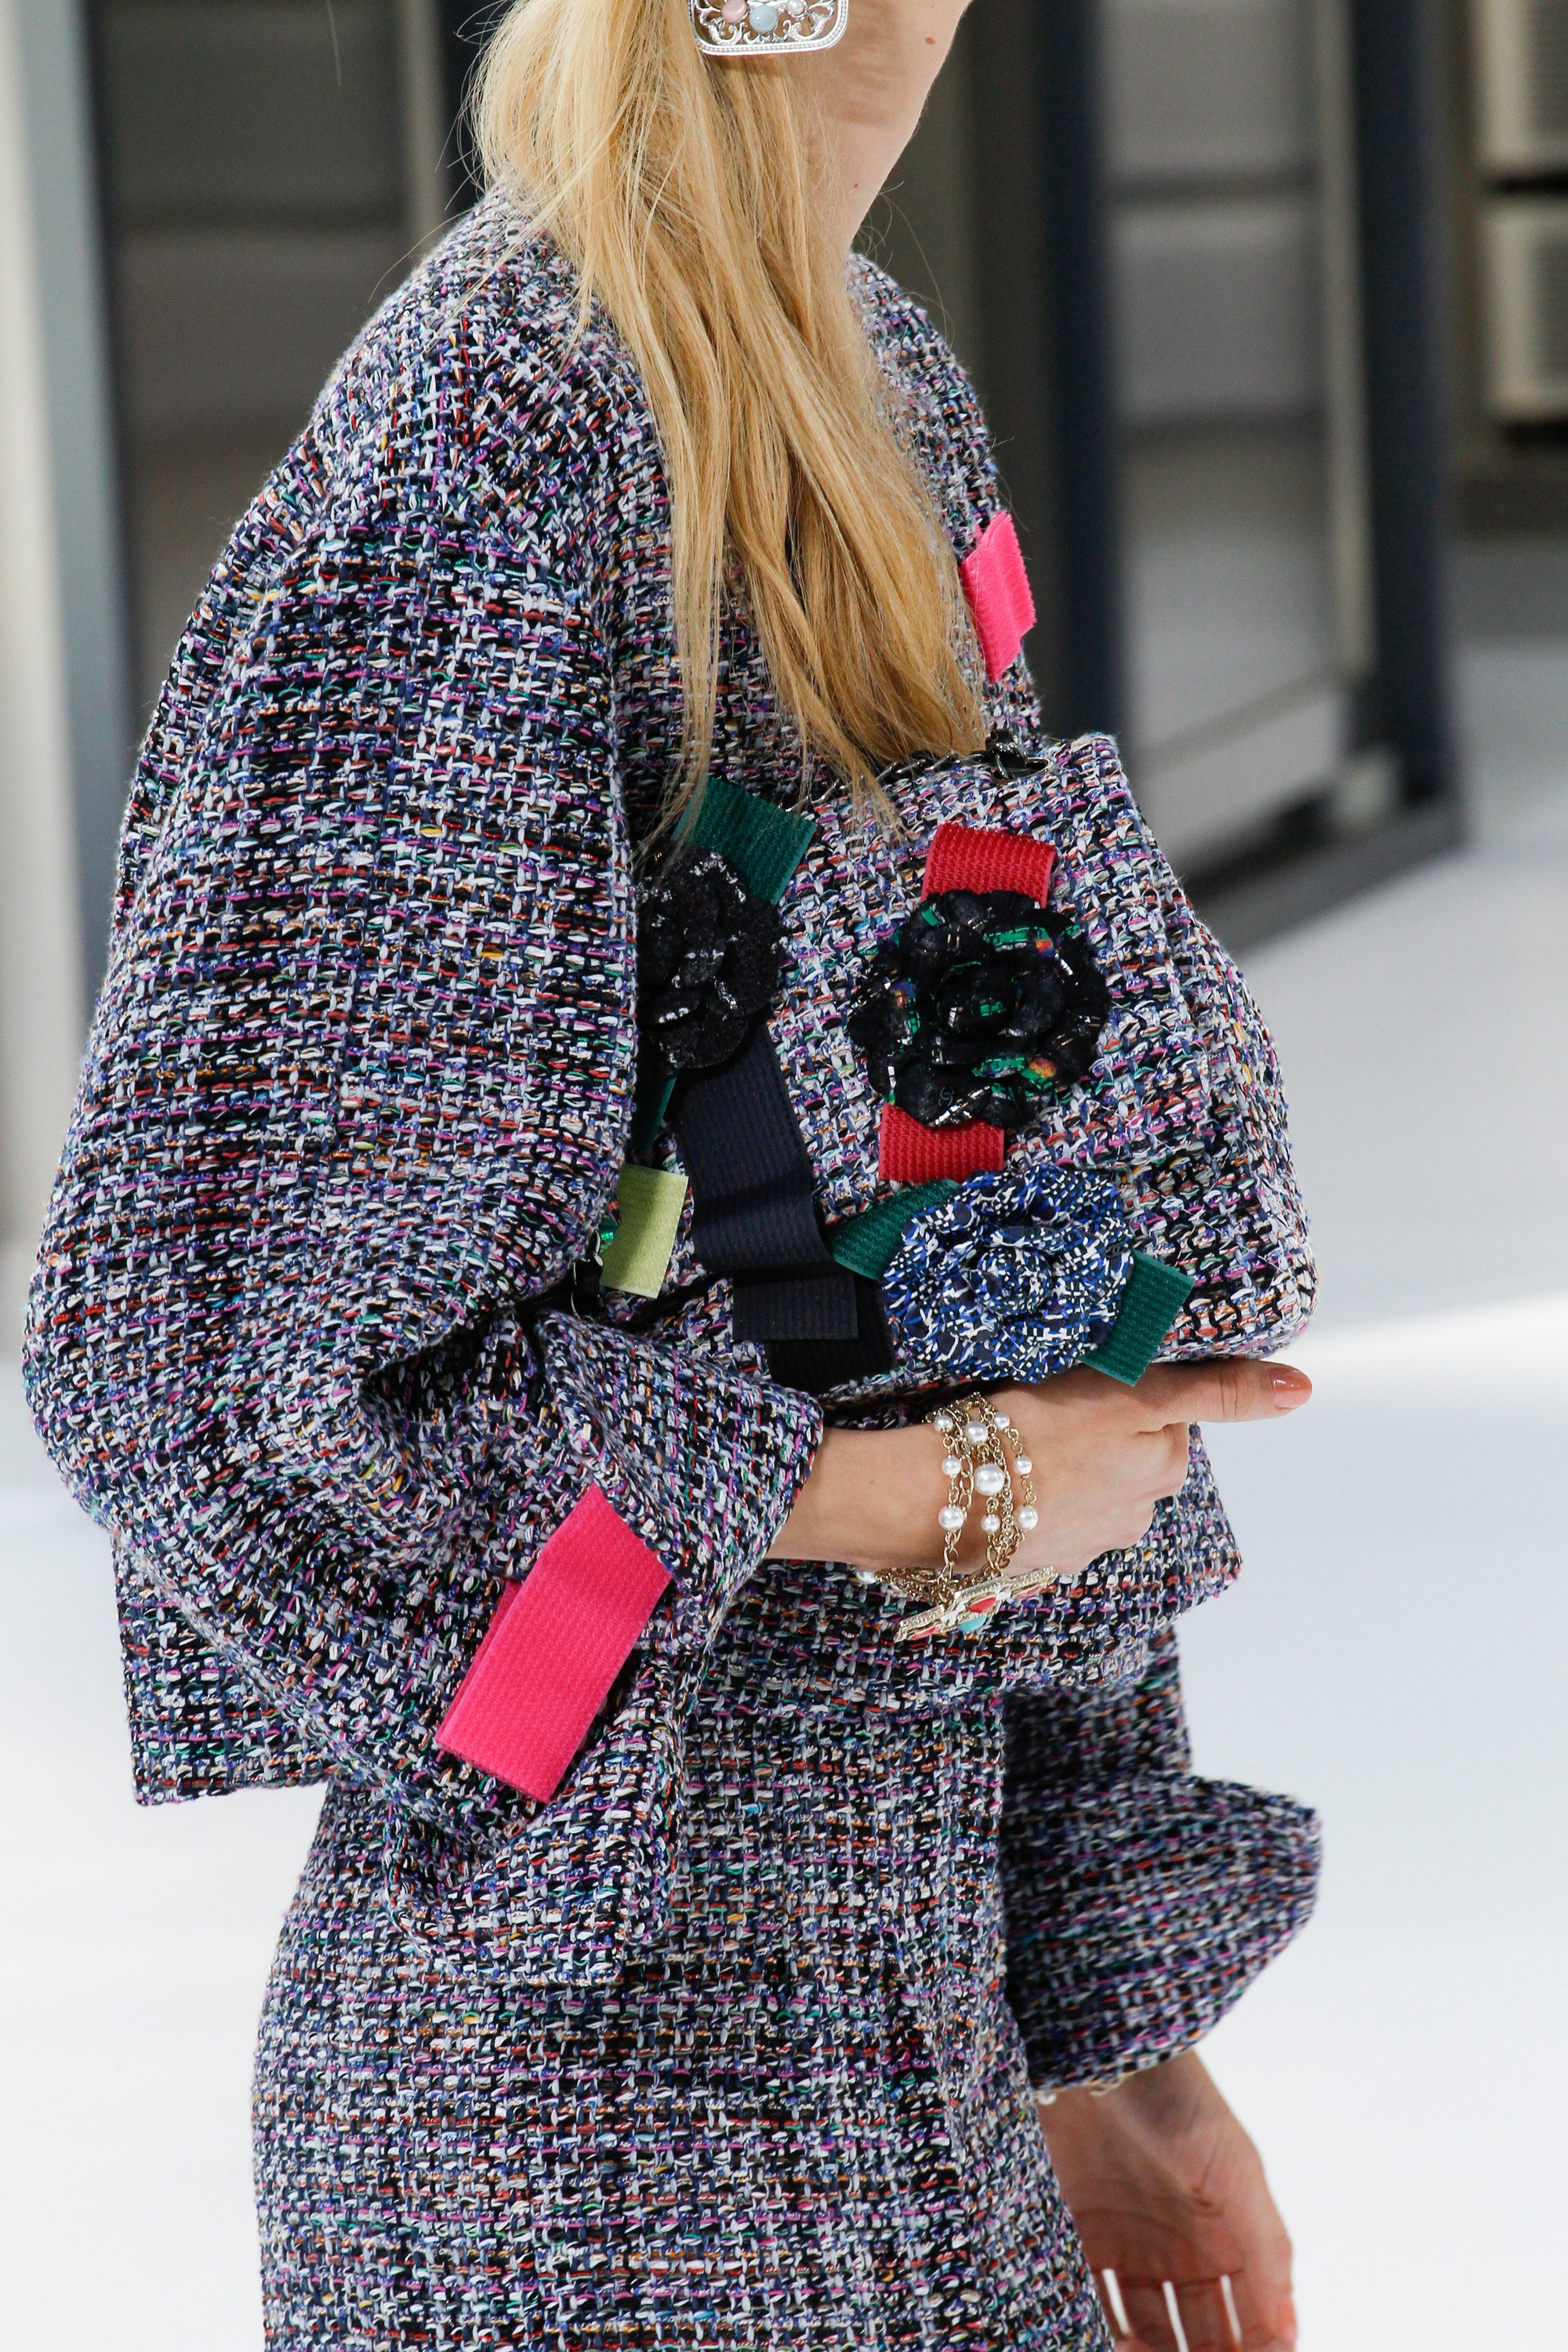 Chanel Spring Summer 2017 Runway Bag Collection Spotted